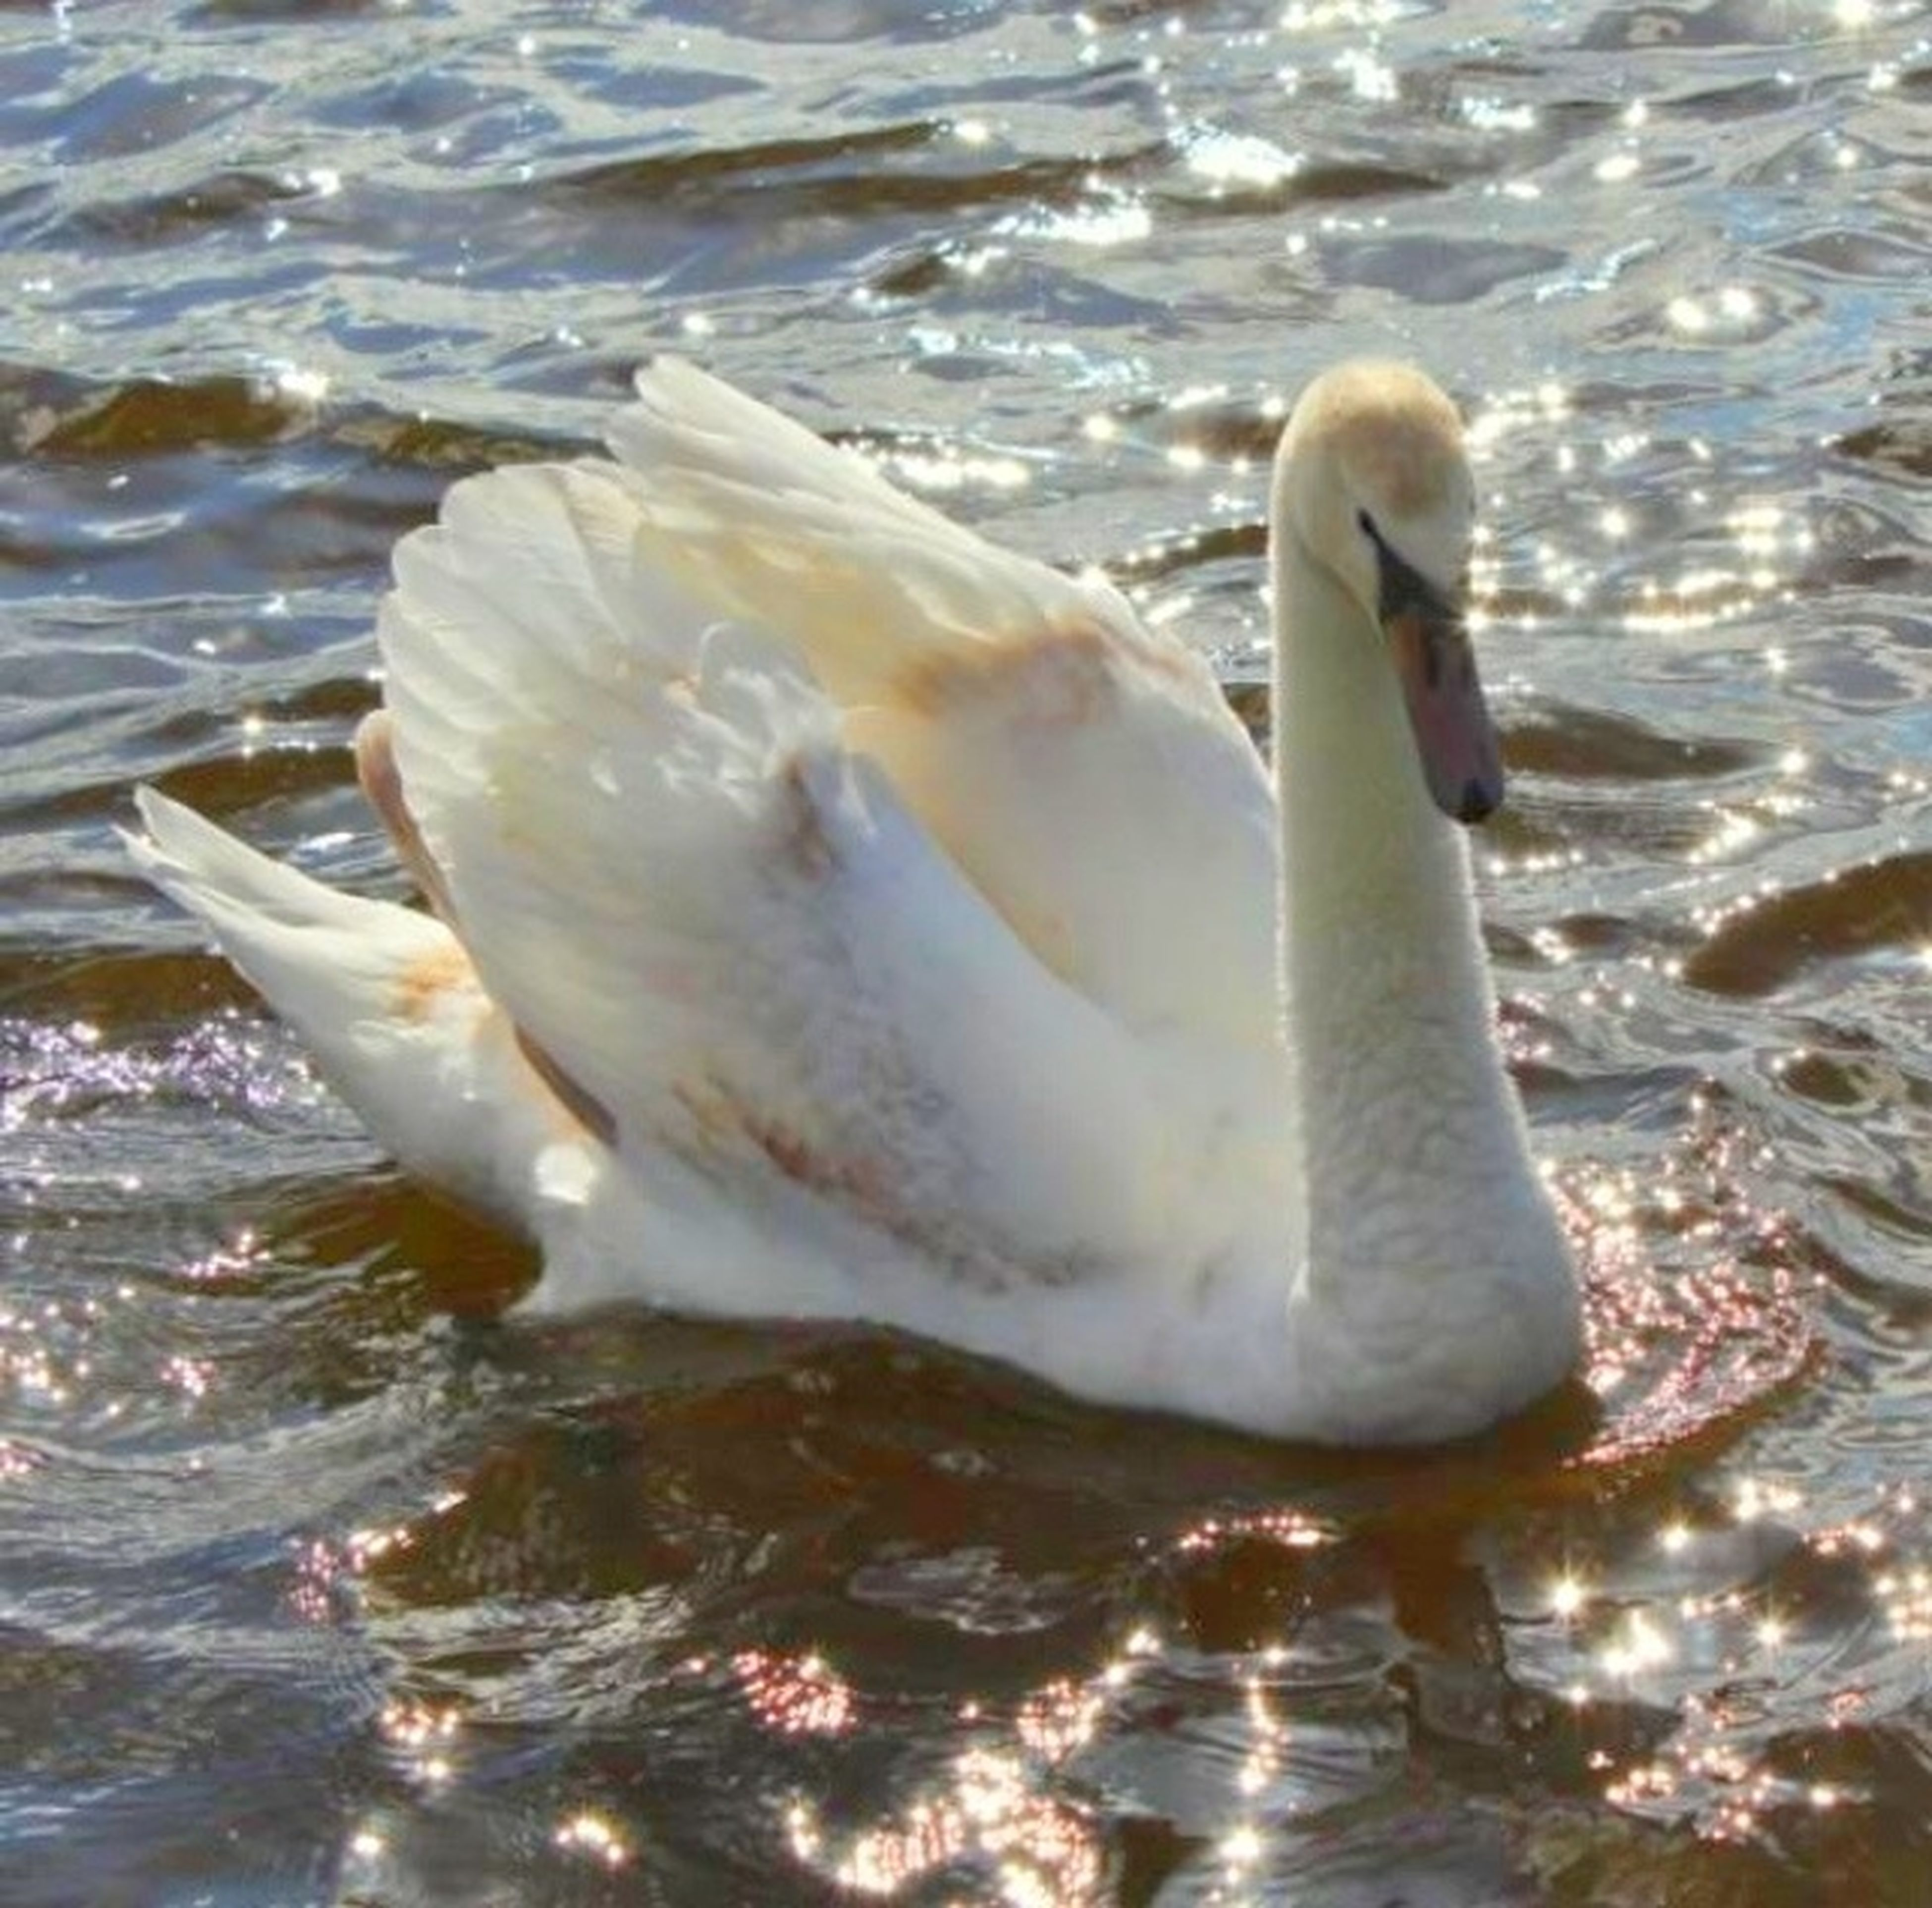 animal themes, water, animals in the wild, bird, wildlife, swan, swimming, lake, one animal, beak, waterfront, water bird, rippled, white color, nature, high angle view, reflection, outdoors, day, duck